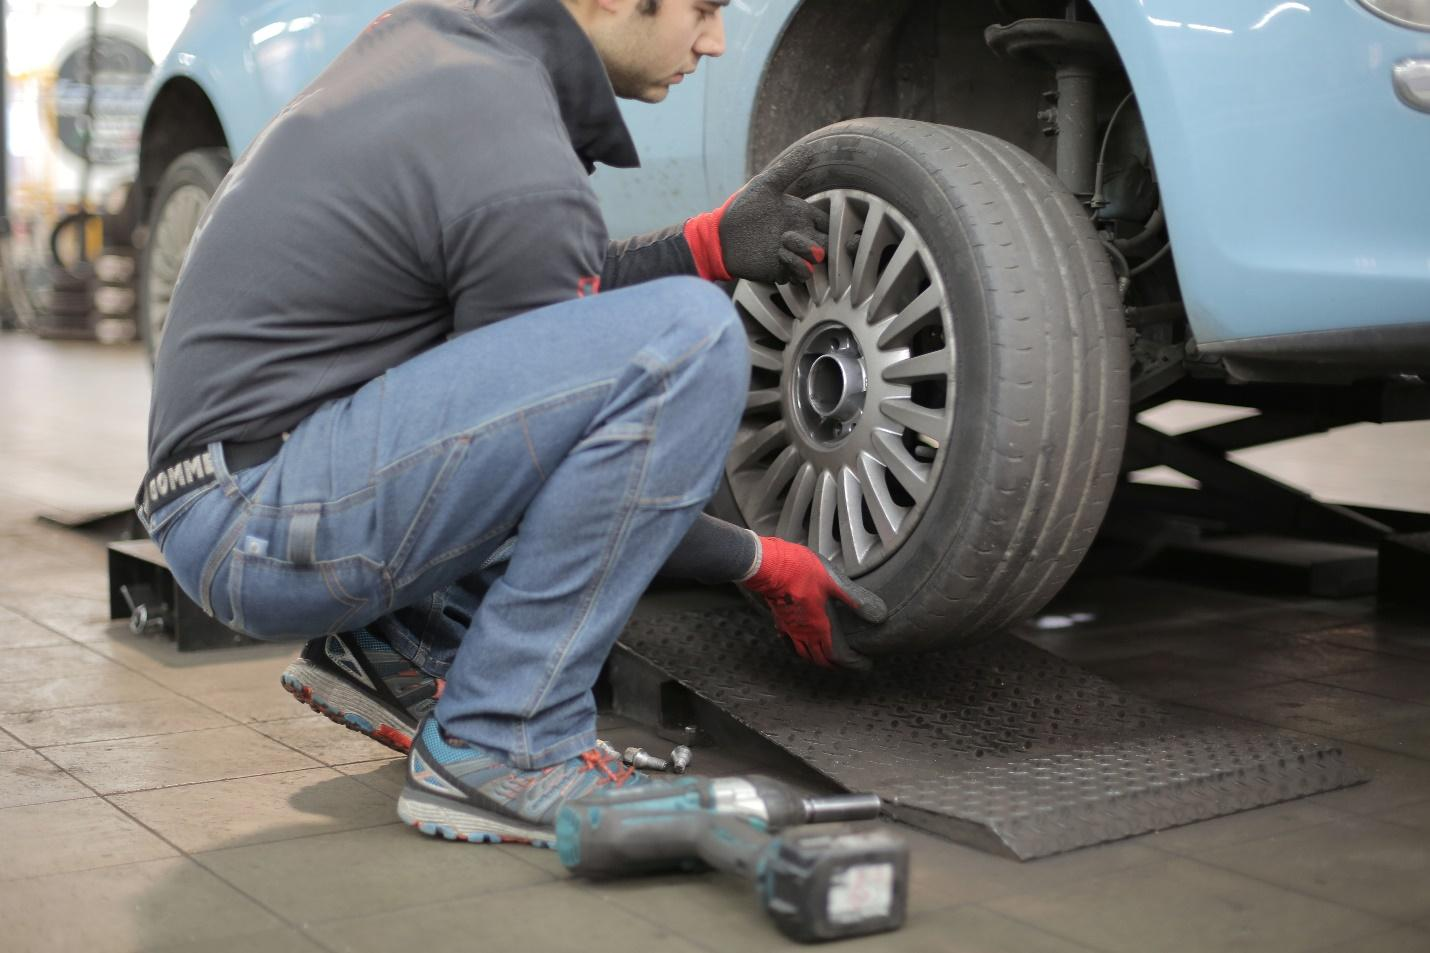 A person working on a car tire  Description automatically generated with low confidence